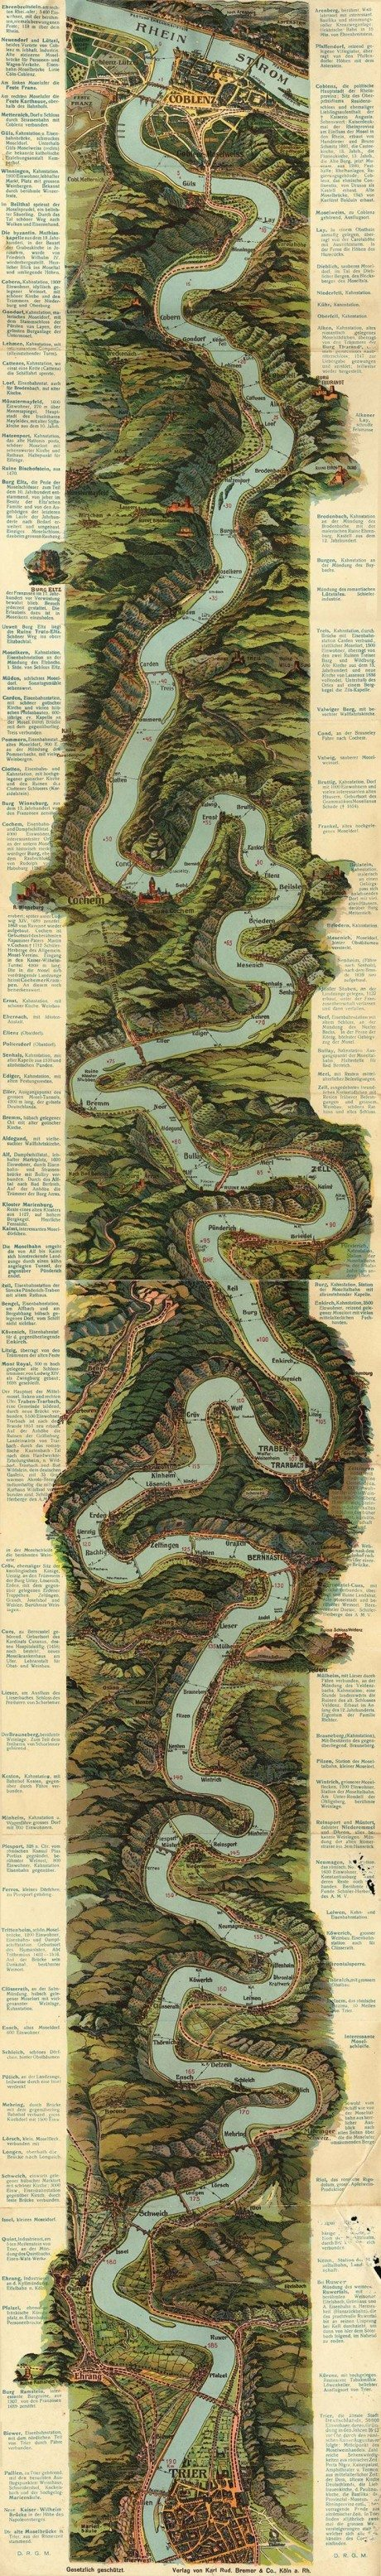 the mosel river, germany, map, circa 1930, cartography